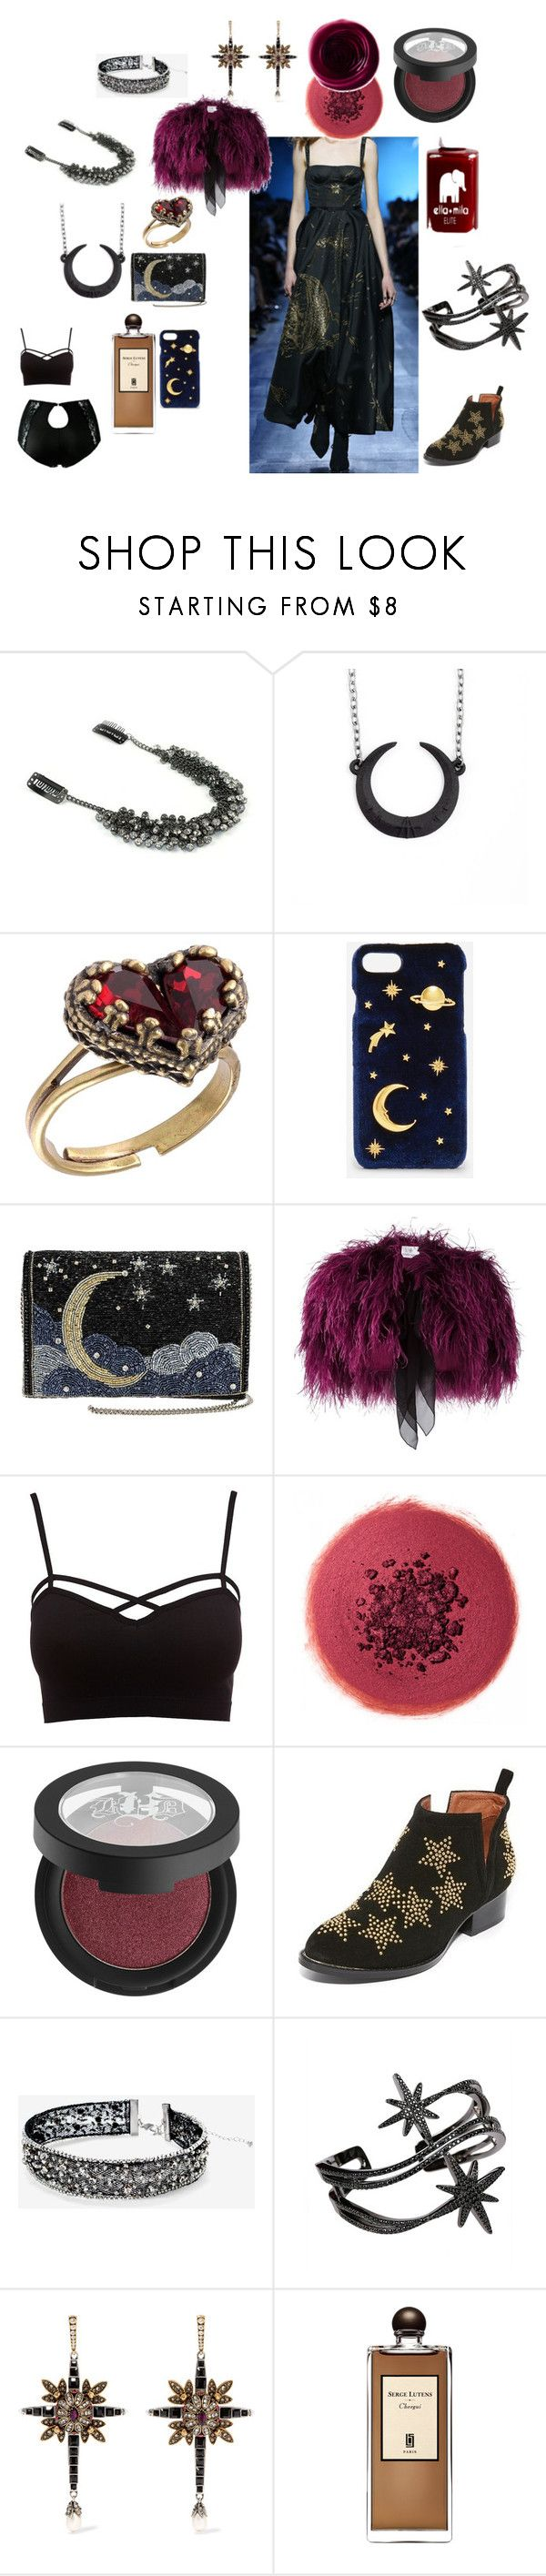 """""""J'aDior"""" by martianspygirl ❤ liked on Polyvore featuring Michal Negrin, CHARLES & KEITH, Daizy Shely, Charlotte Russe, Kat Von D, Jeffrey Campbell, White House Black Market, APM Monaco, Alexander McQueen and Serge Lutens"""